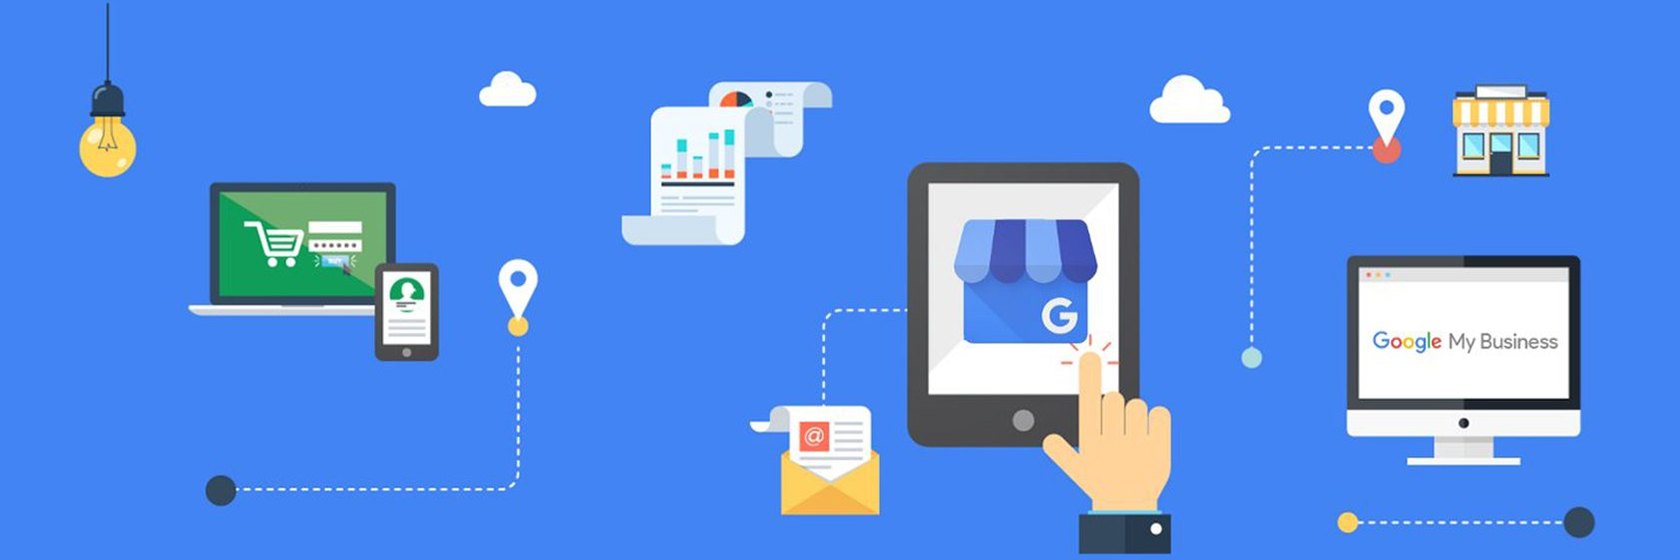 Google My Business – What You Need to Know?